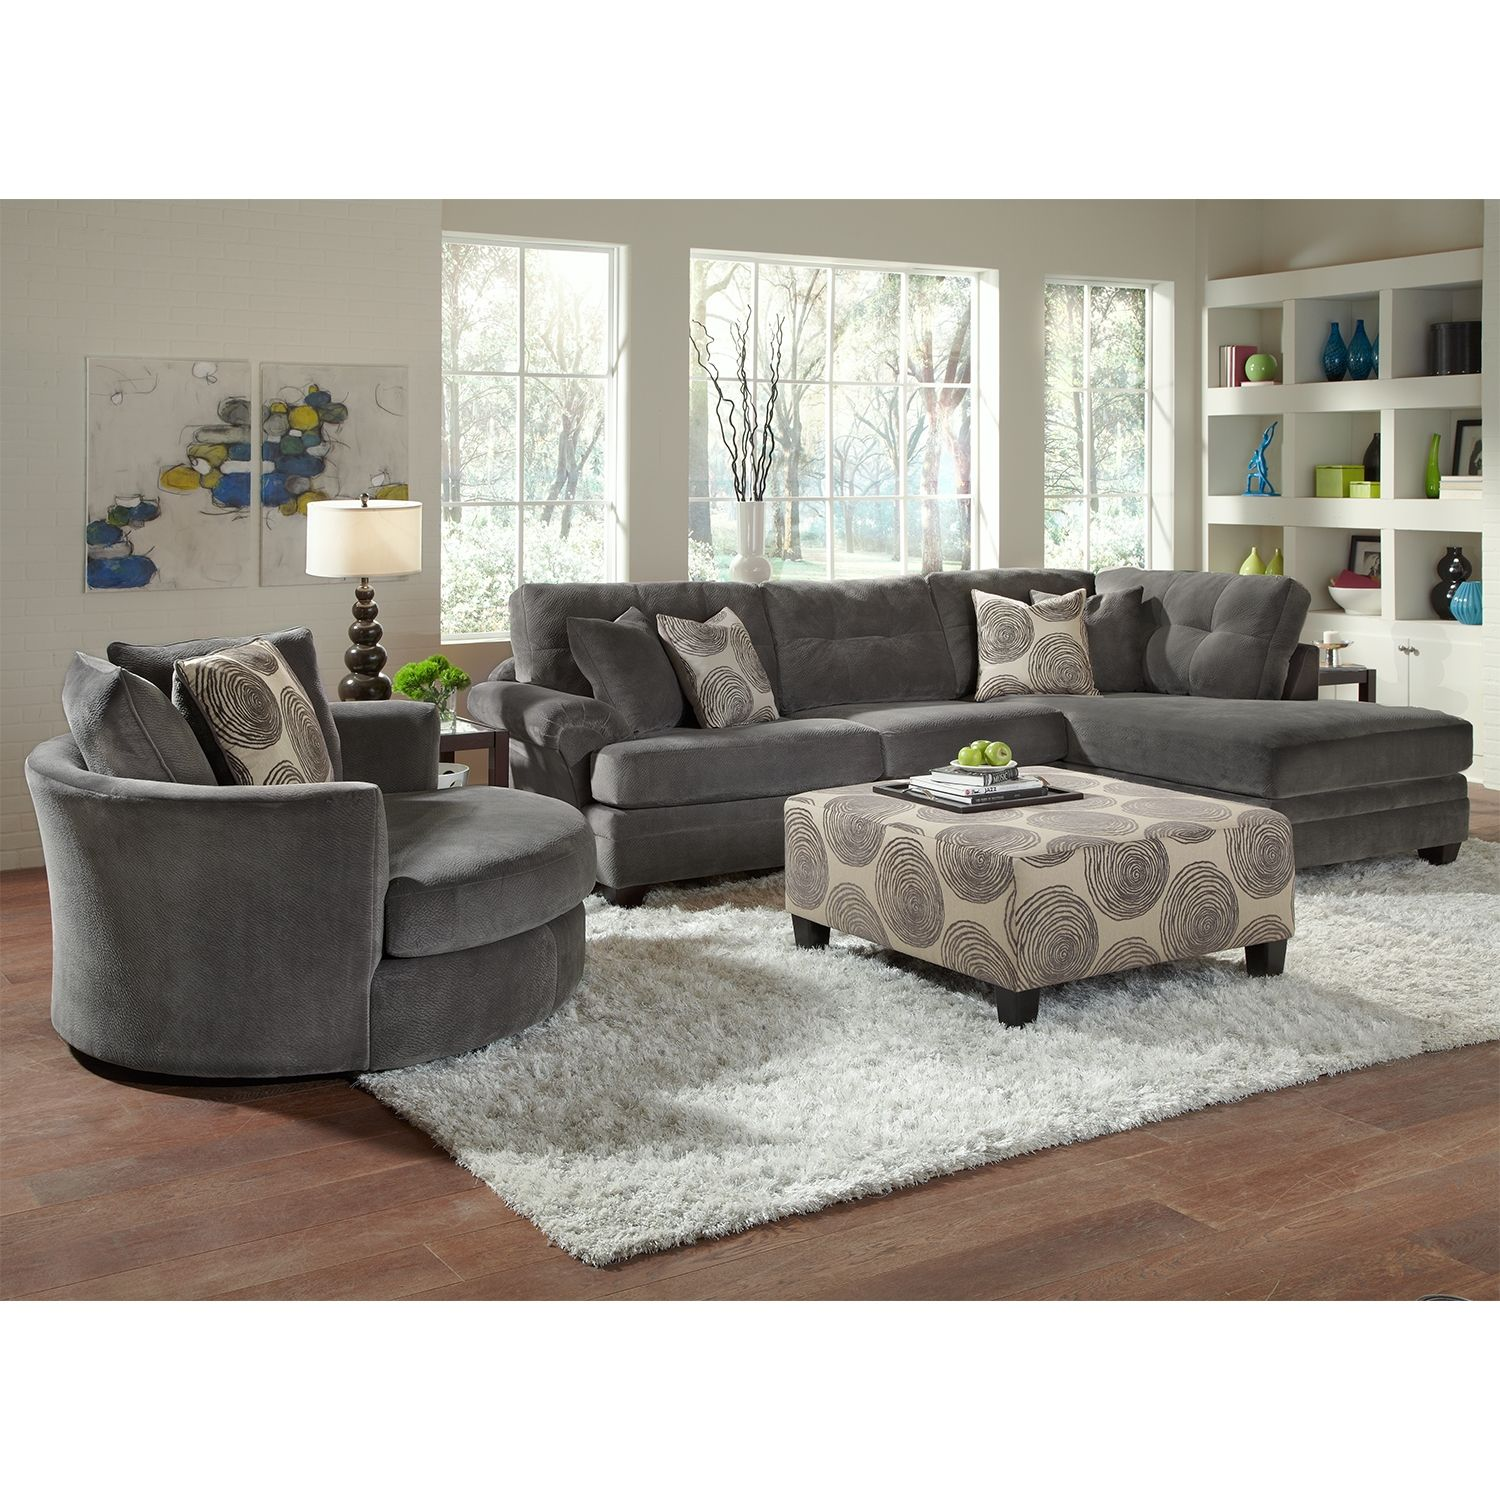 Sala Set Gray Catalina Gray Upholstery 2 Pc Sectional Furniture